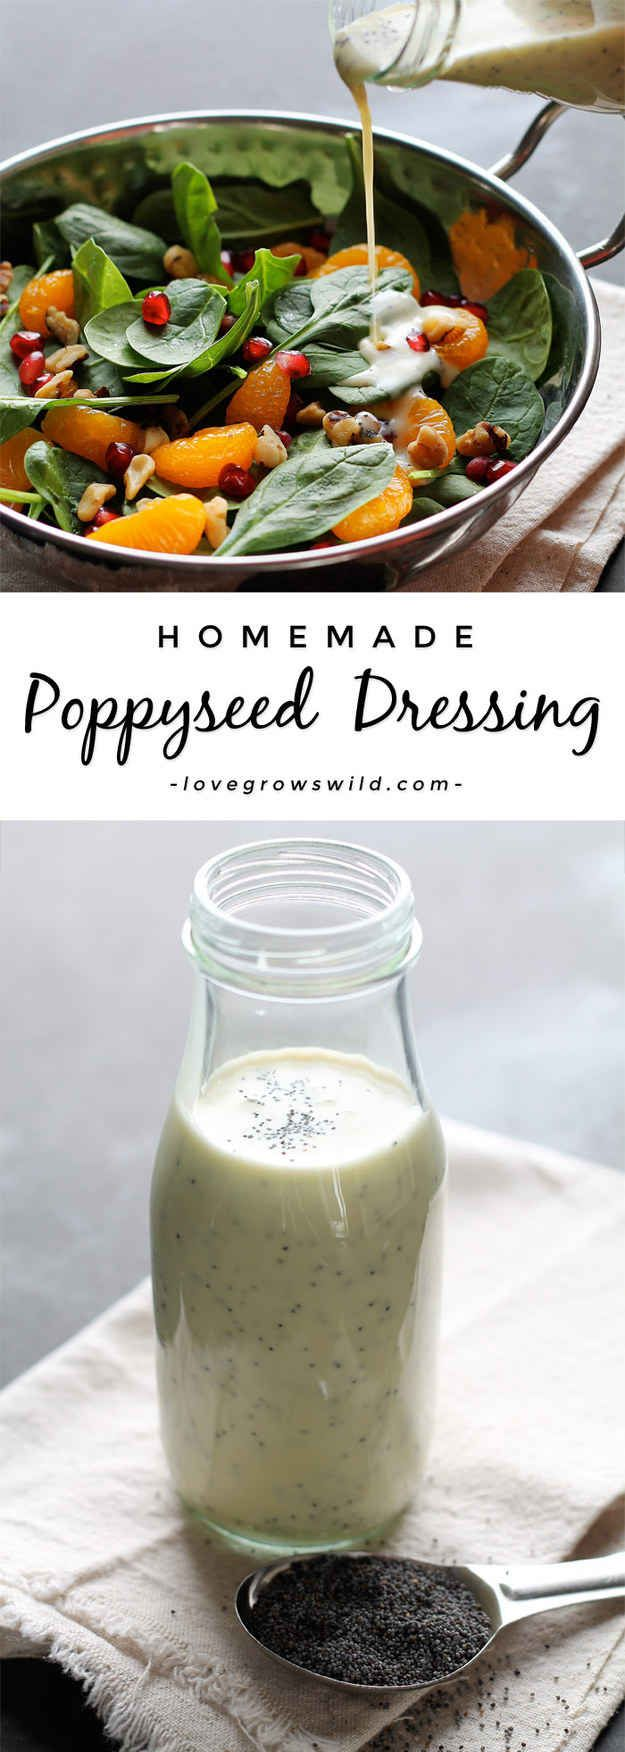 Whole bunch of homemade dressing recipes